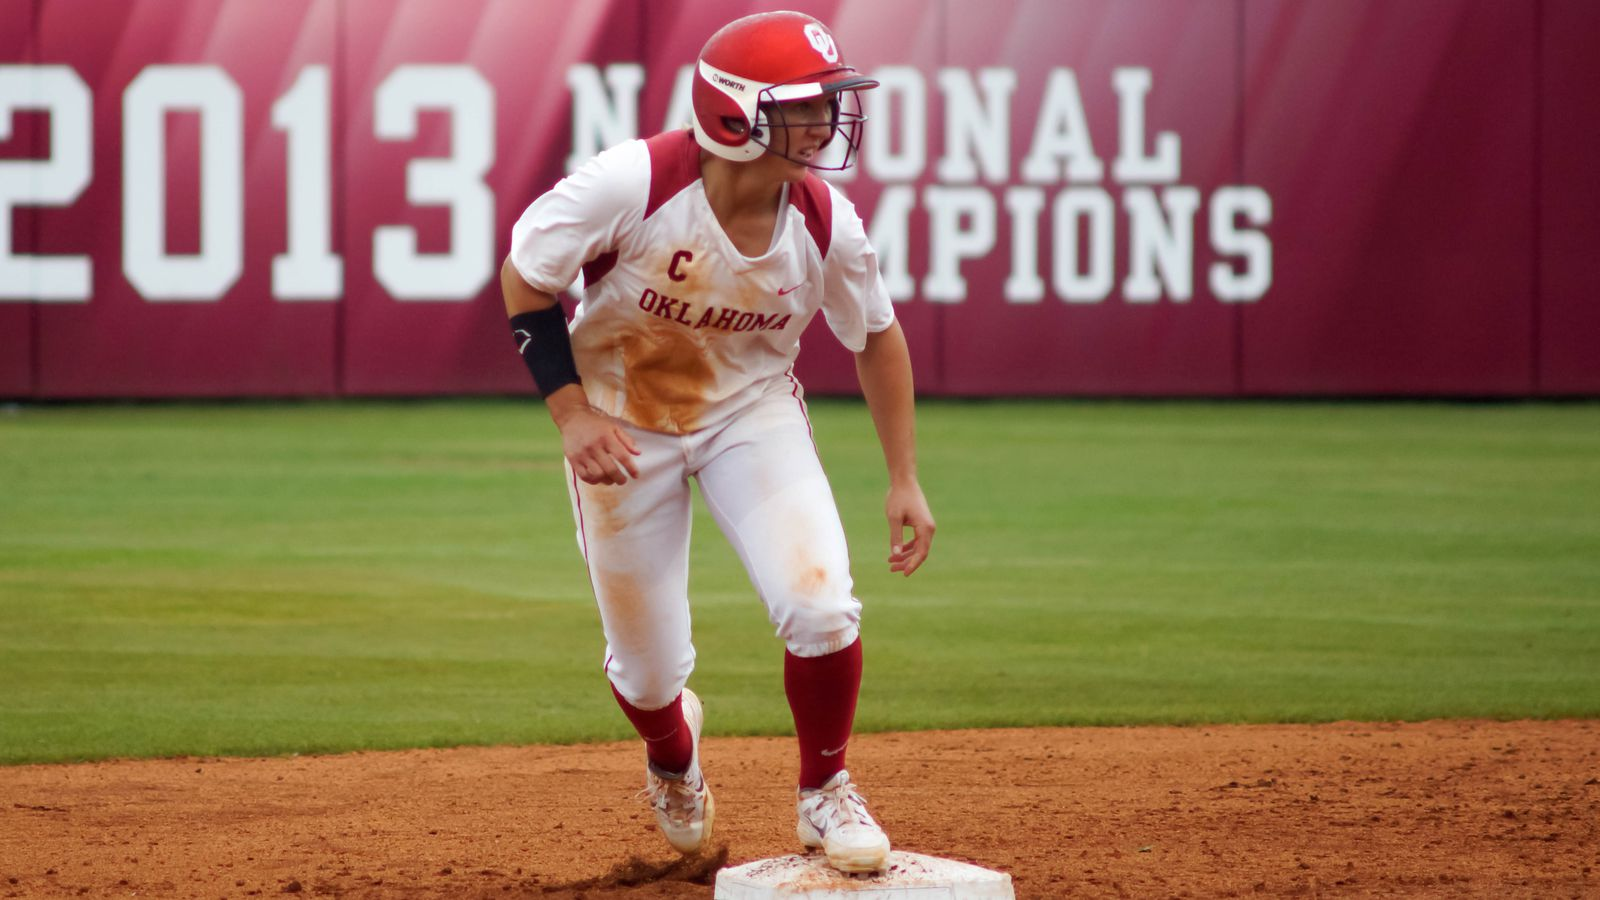 Shelby_pendley_baserunning.0.0